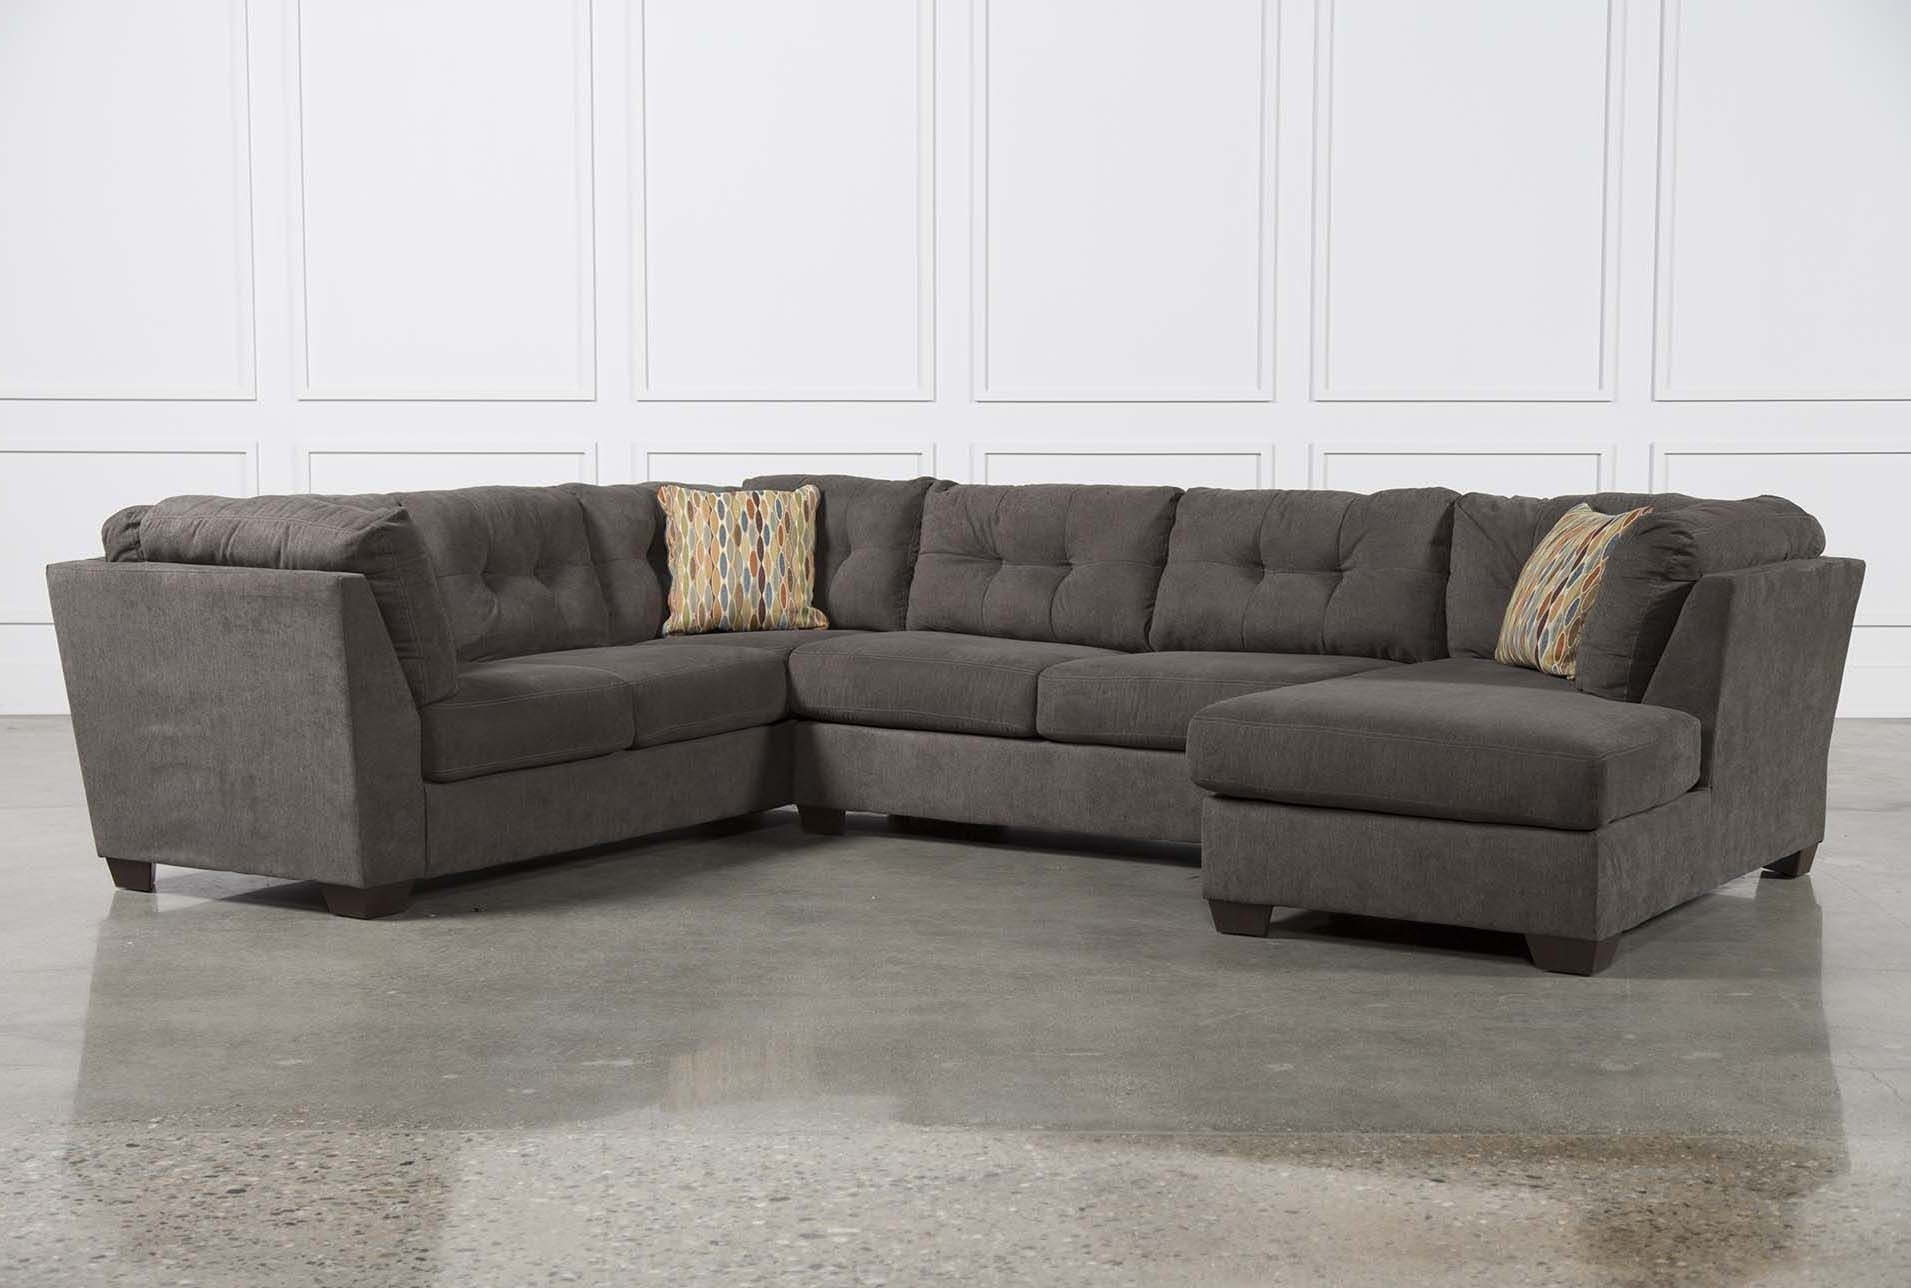 Norfolk Grey 3 Piece Sectional W/laf Chaise With Regard To Norfolk Grey 3 Piece Sectionals With Laf Chaise (View 4 of 25)